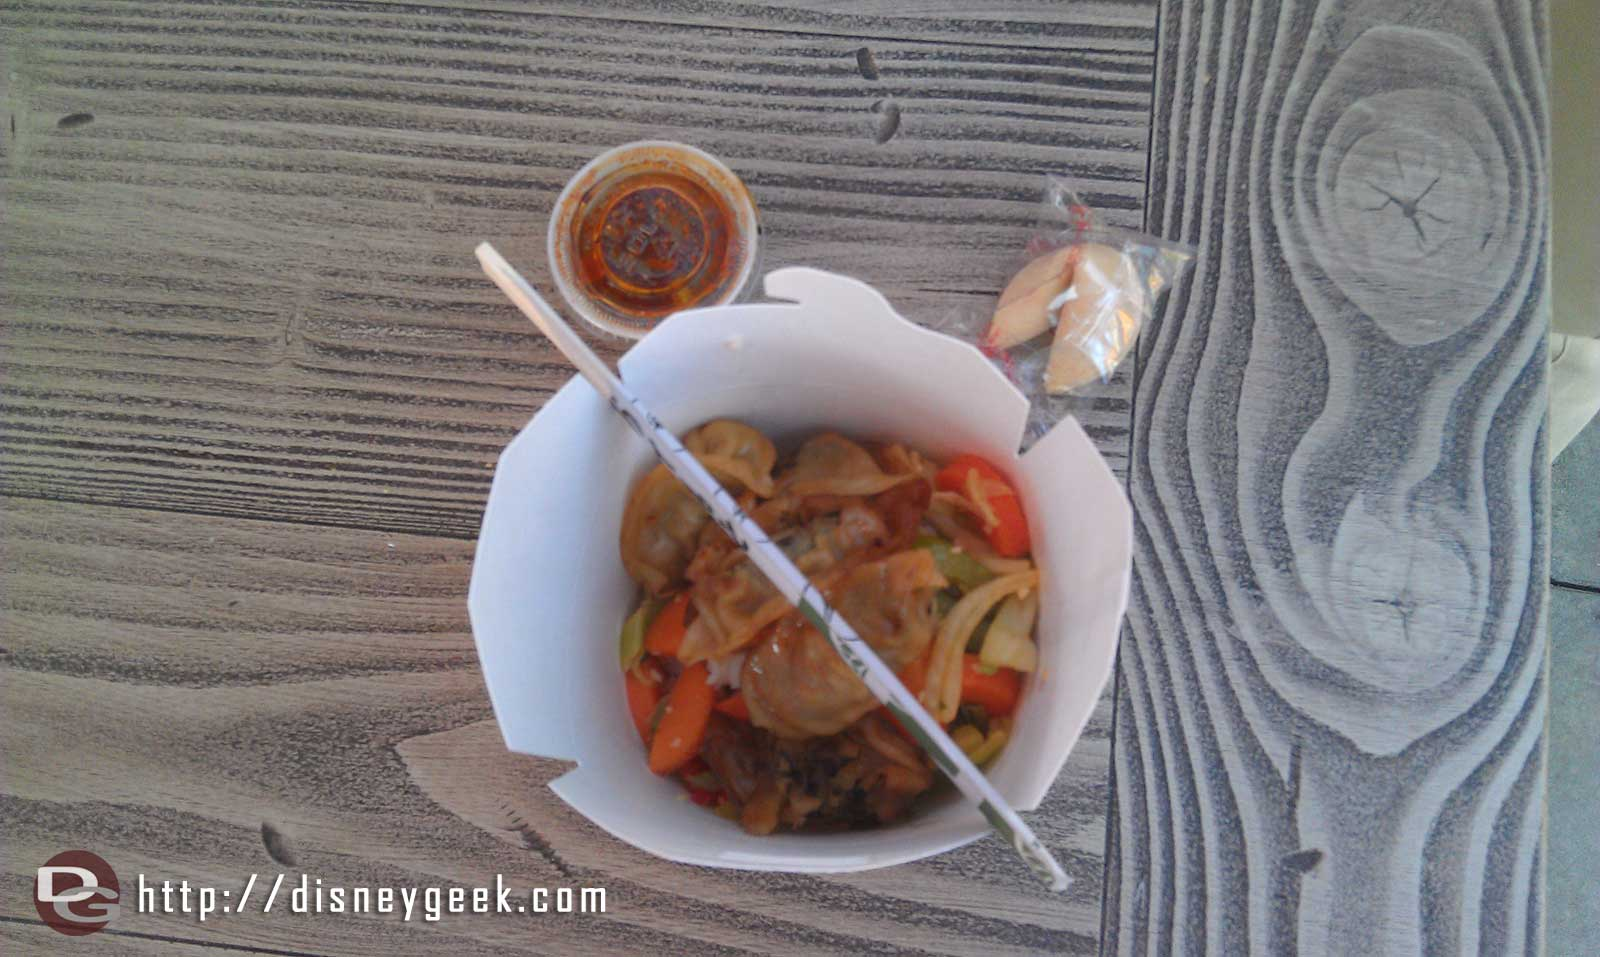 Chicken and Vegetables Potstickers $9.79 at Lucky Fortune Cookery